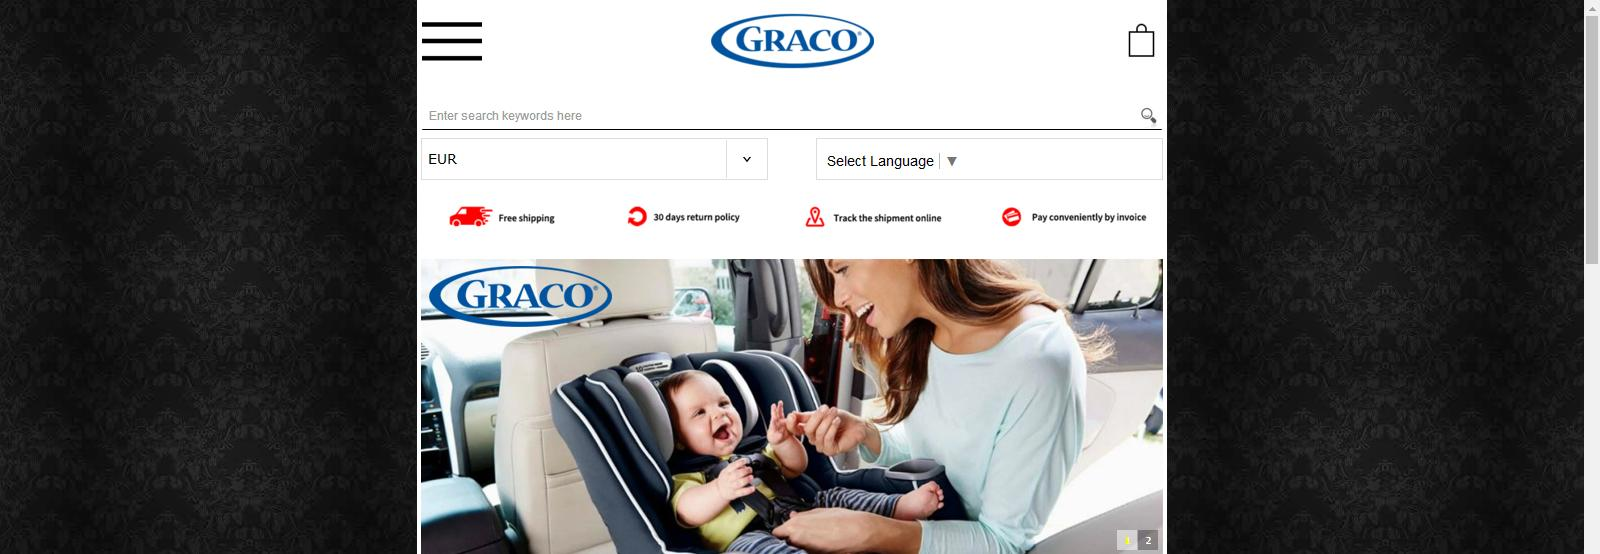 babyproducts.online - Fake Graco Store